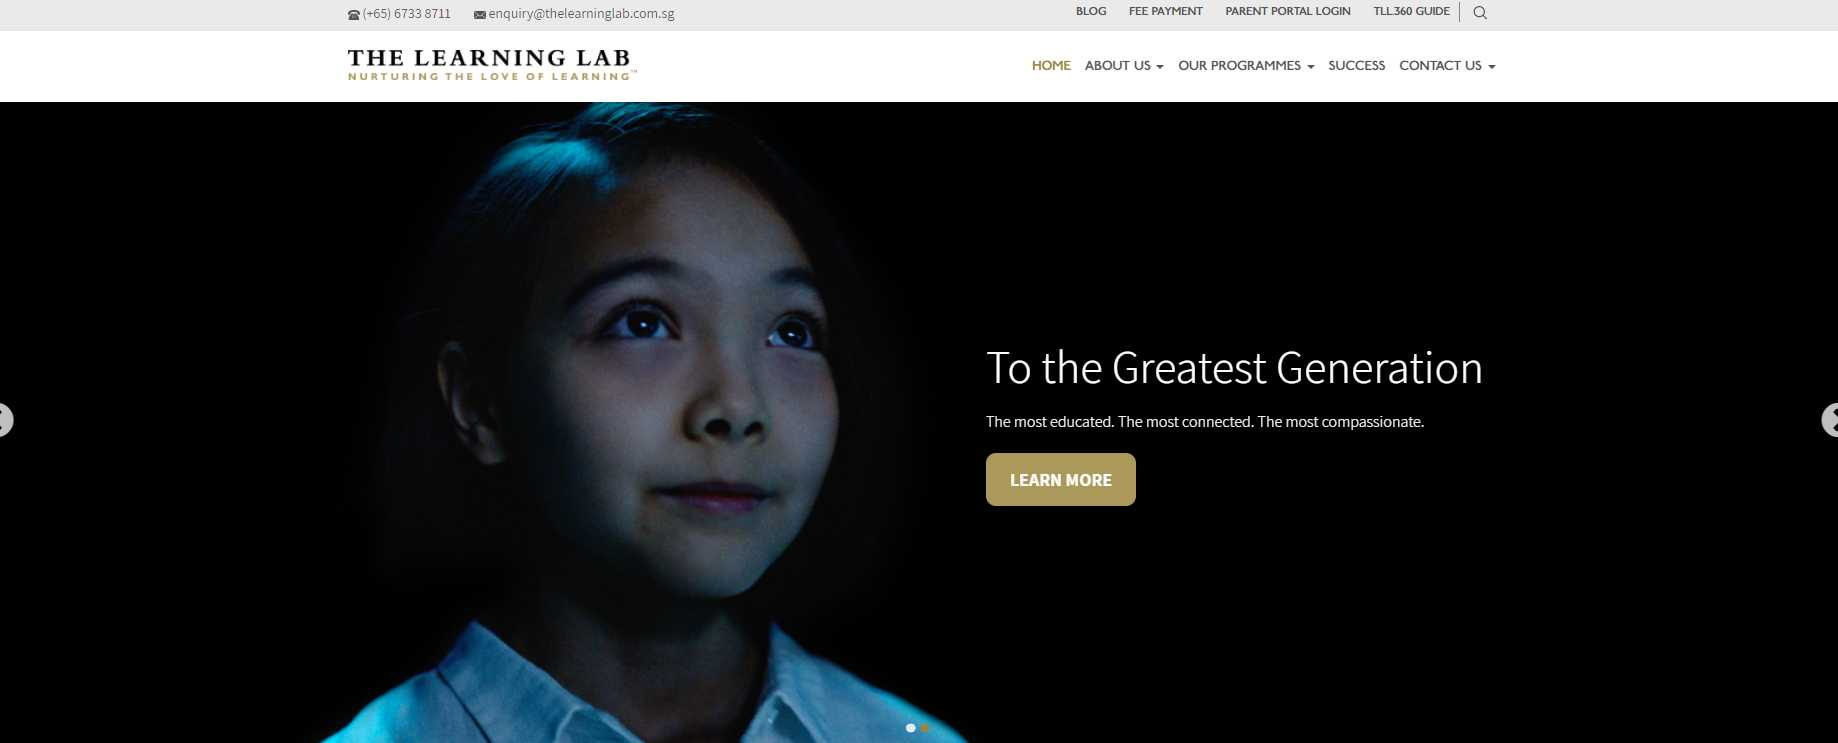 The LEarning LAb Top Biology Tuition in Singapore